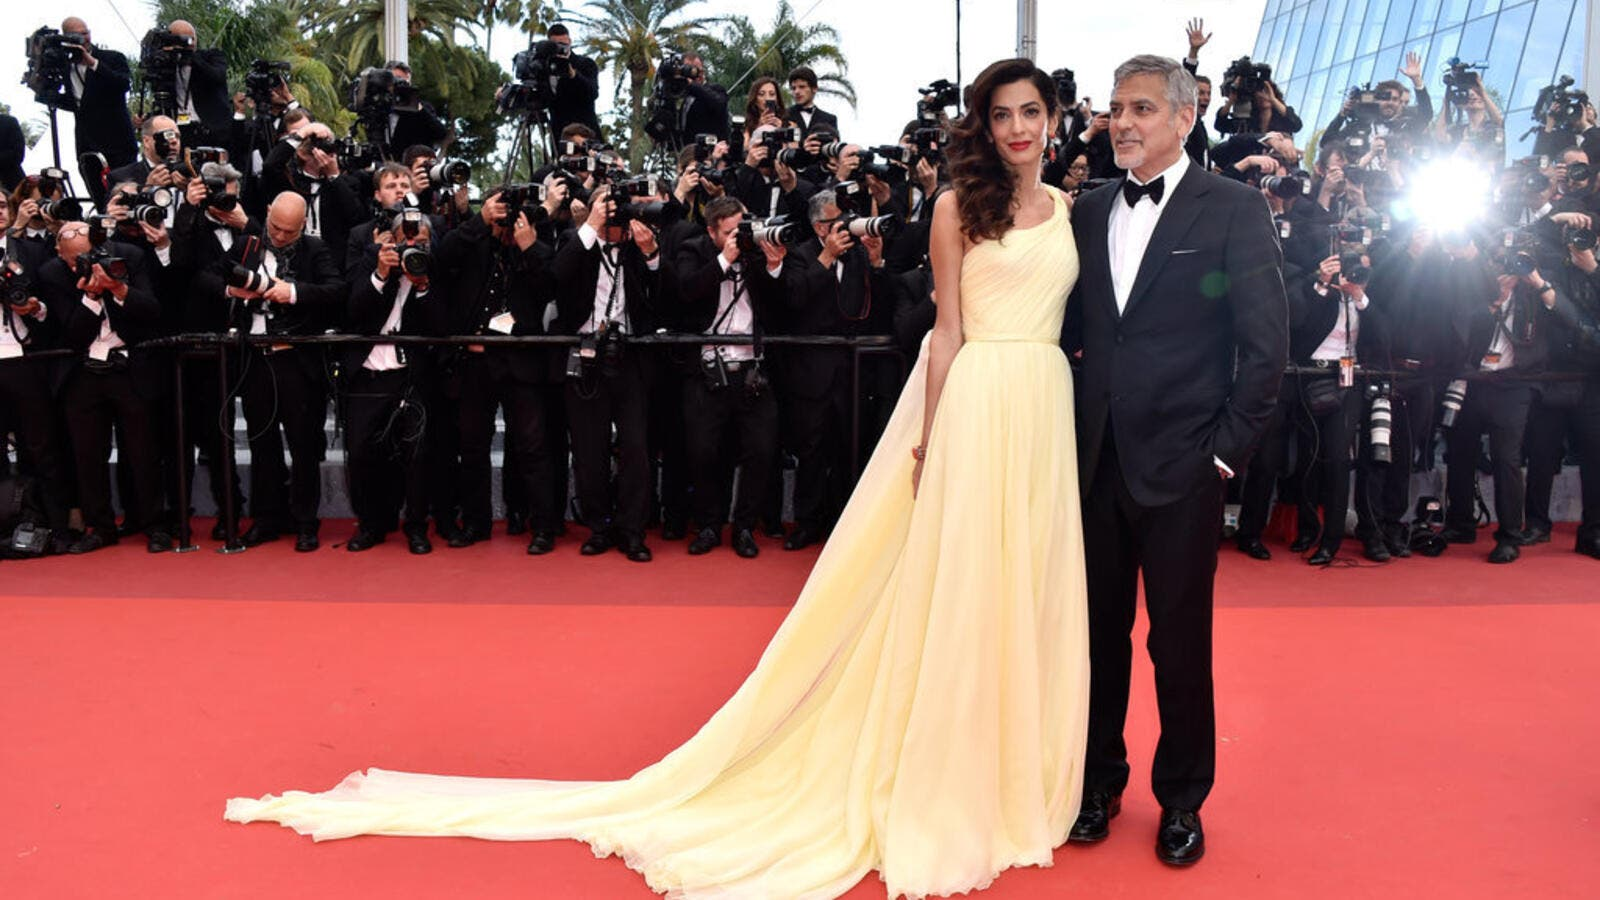 George Clooney's wife made her Cannes debut this week for the release of his movie Money Monster. (Instagram)